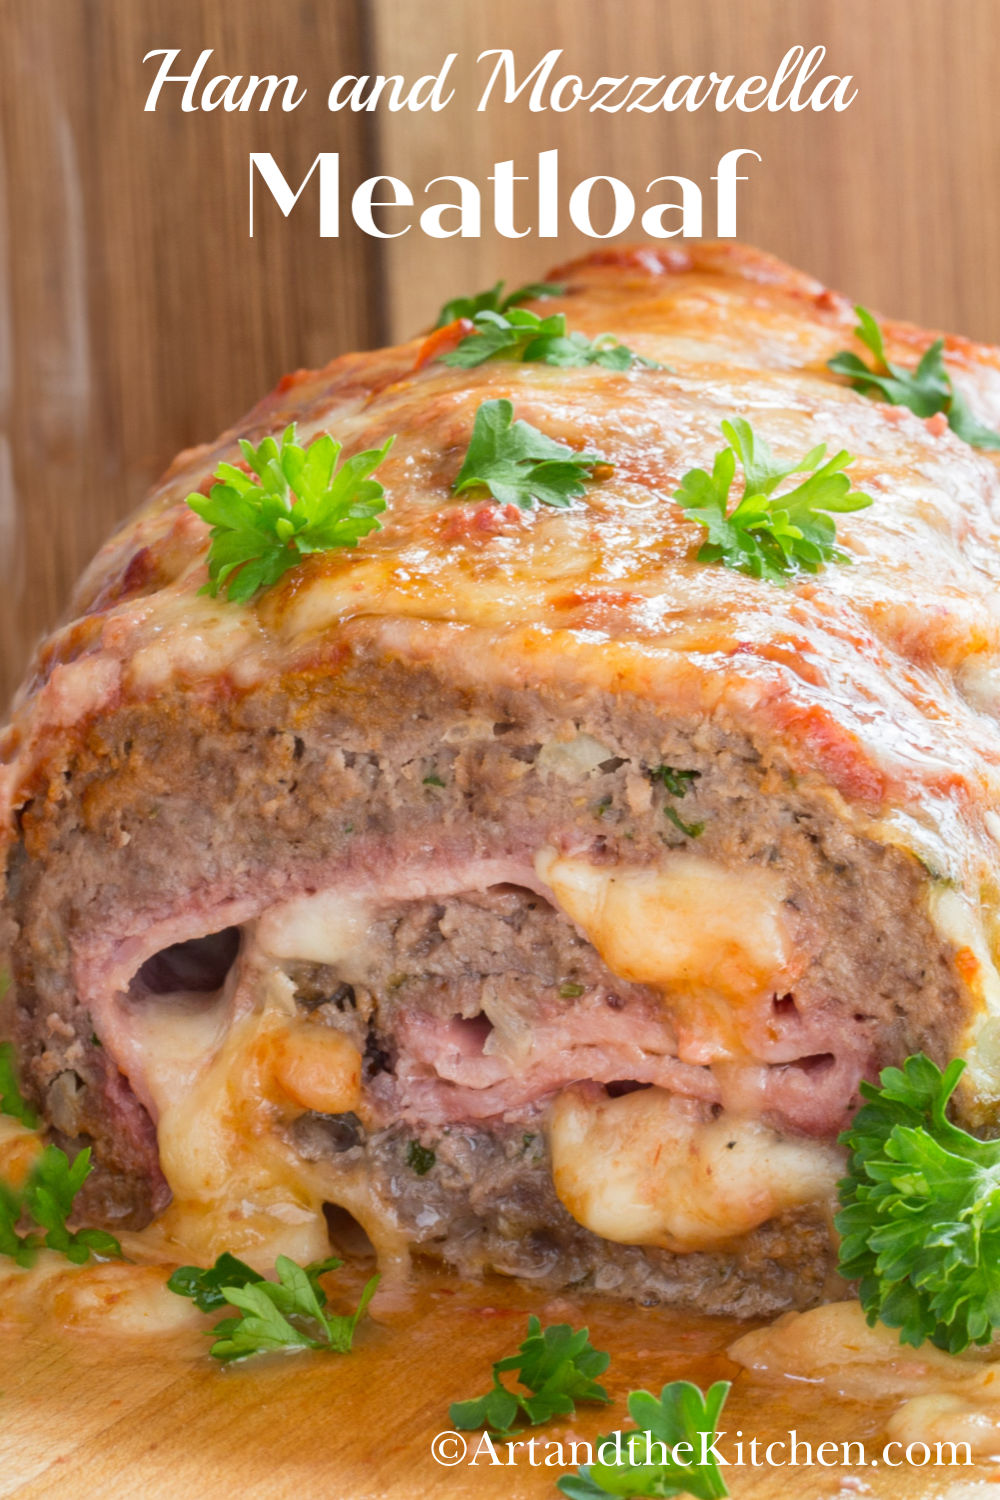 Homemade meatloaf stuffed with slices of ham and mozzarella cheese. This easy to make recipe takes meatloaf to a whole new level of delicious! Ground beef is mixed with bread crumbs and an assortment of spices, then rolled in a layer of ham and cheese. Topping off the meatloaf is rich tomato sauce and melted cheese.